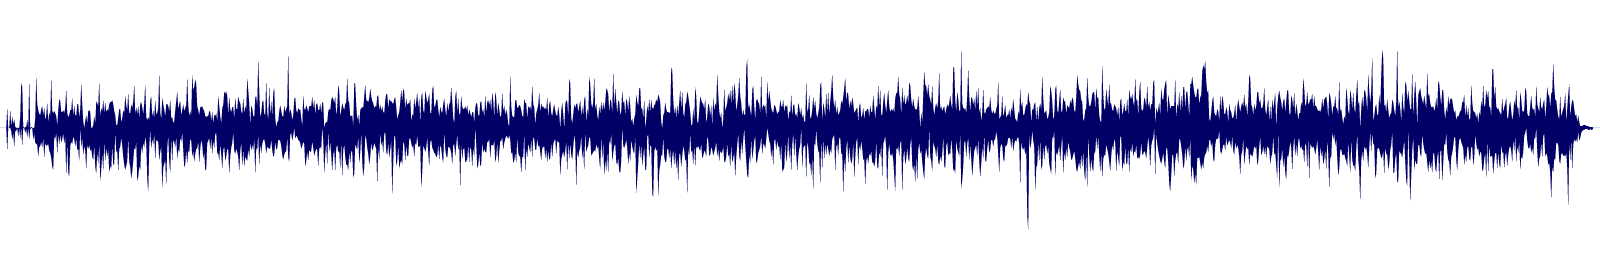 waveform of track #143851